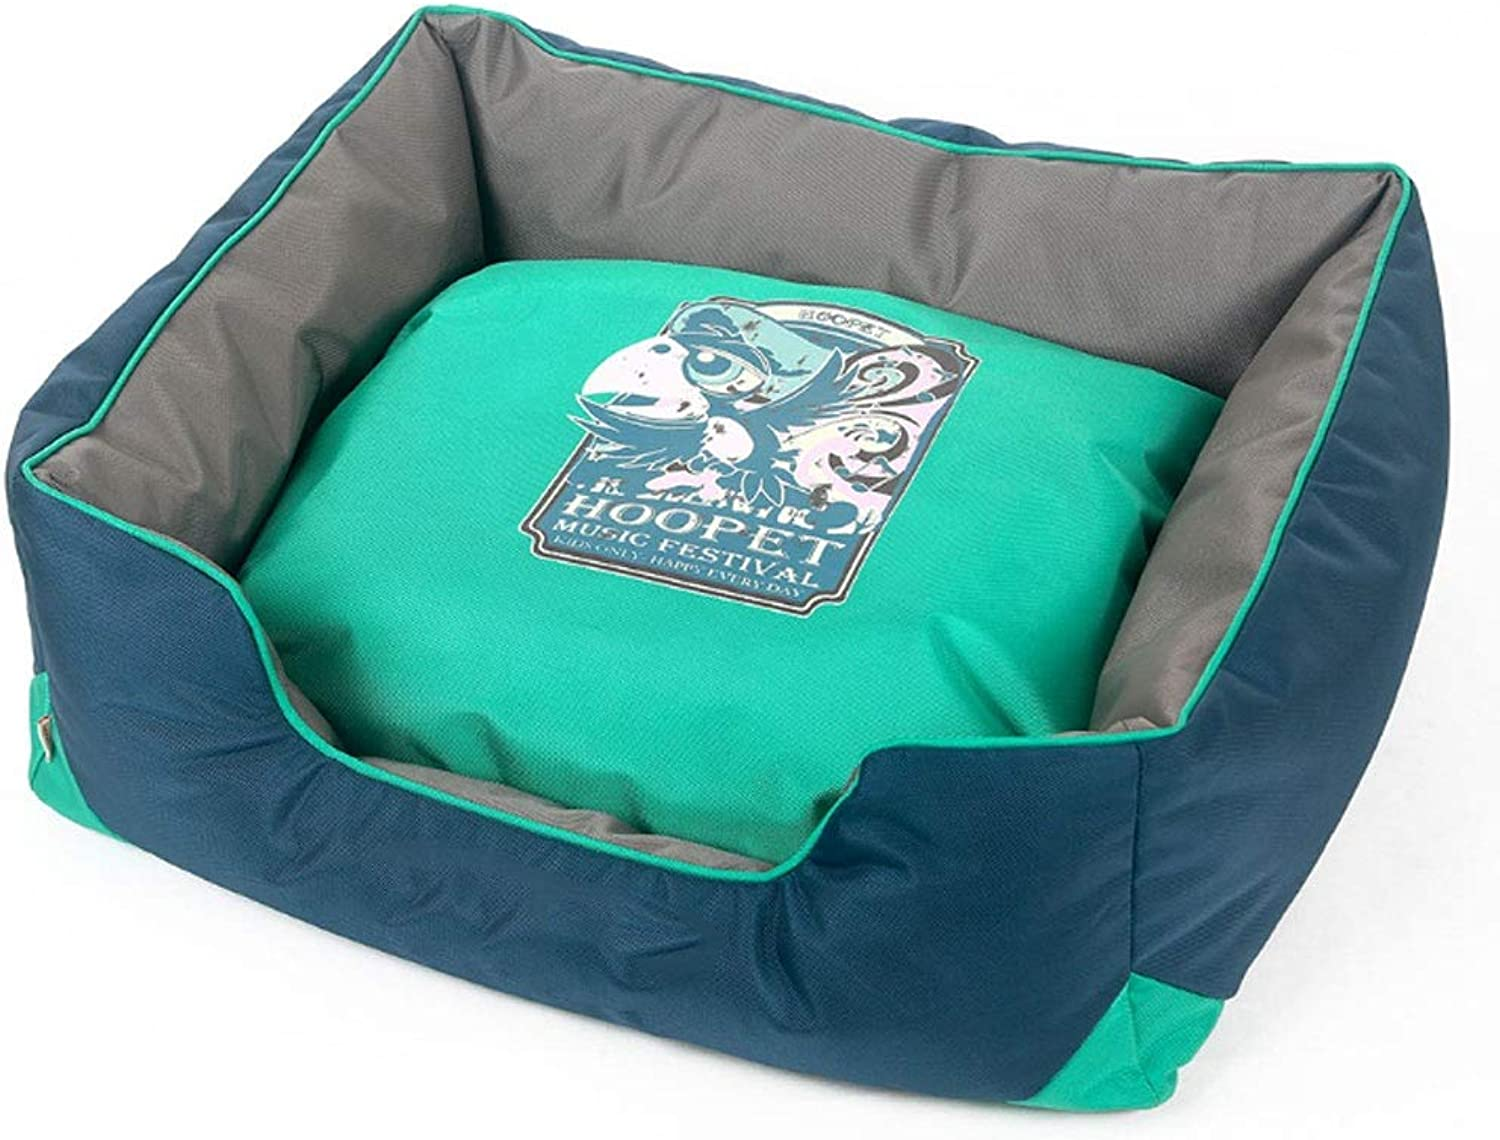 PETS 33 Kennel removable washable pet mat washable puppy bed Seasons Universal Washable Nonslip Foldable Soft (color   bluee, Size   S)